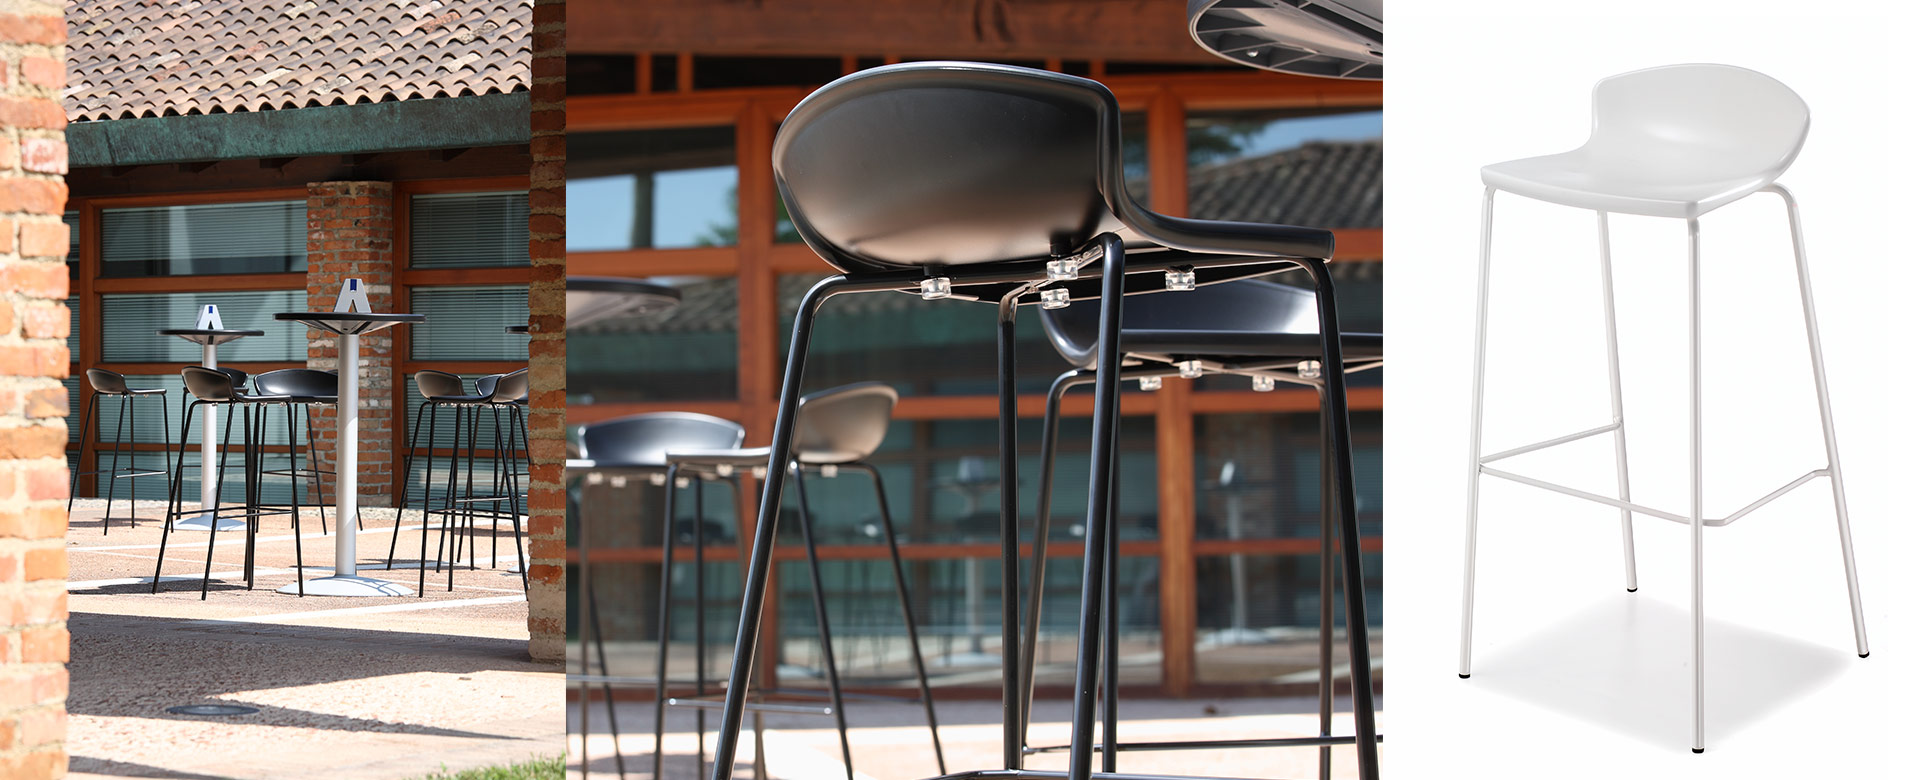 outdoor stackable chairs canada chair and half calma stools